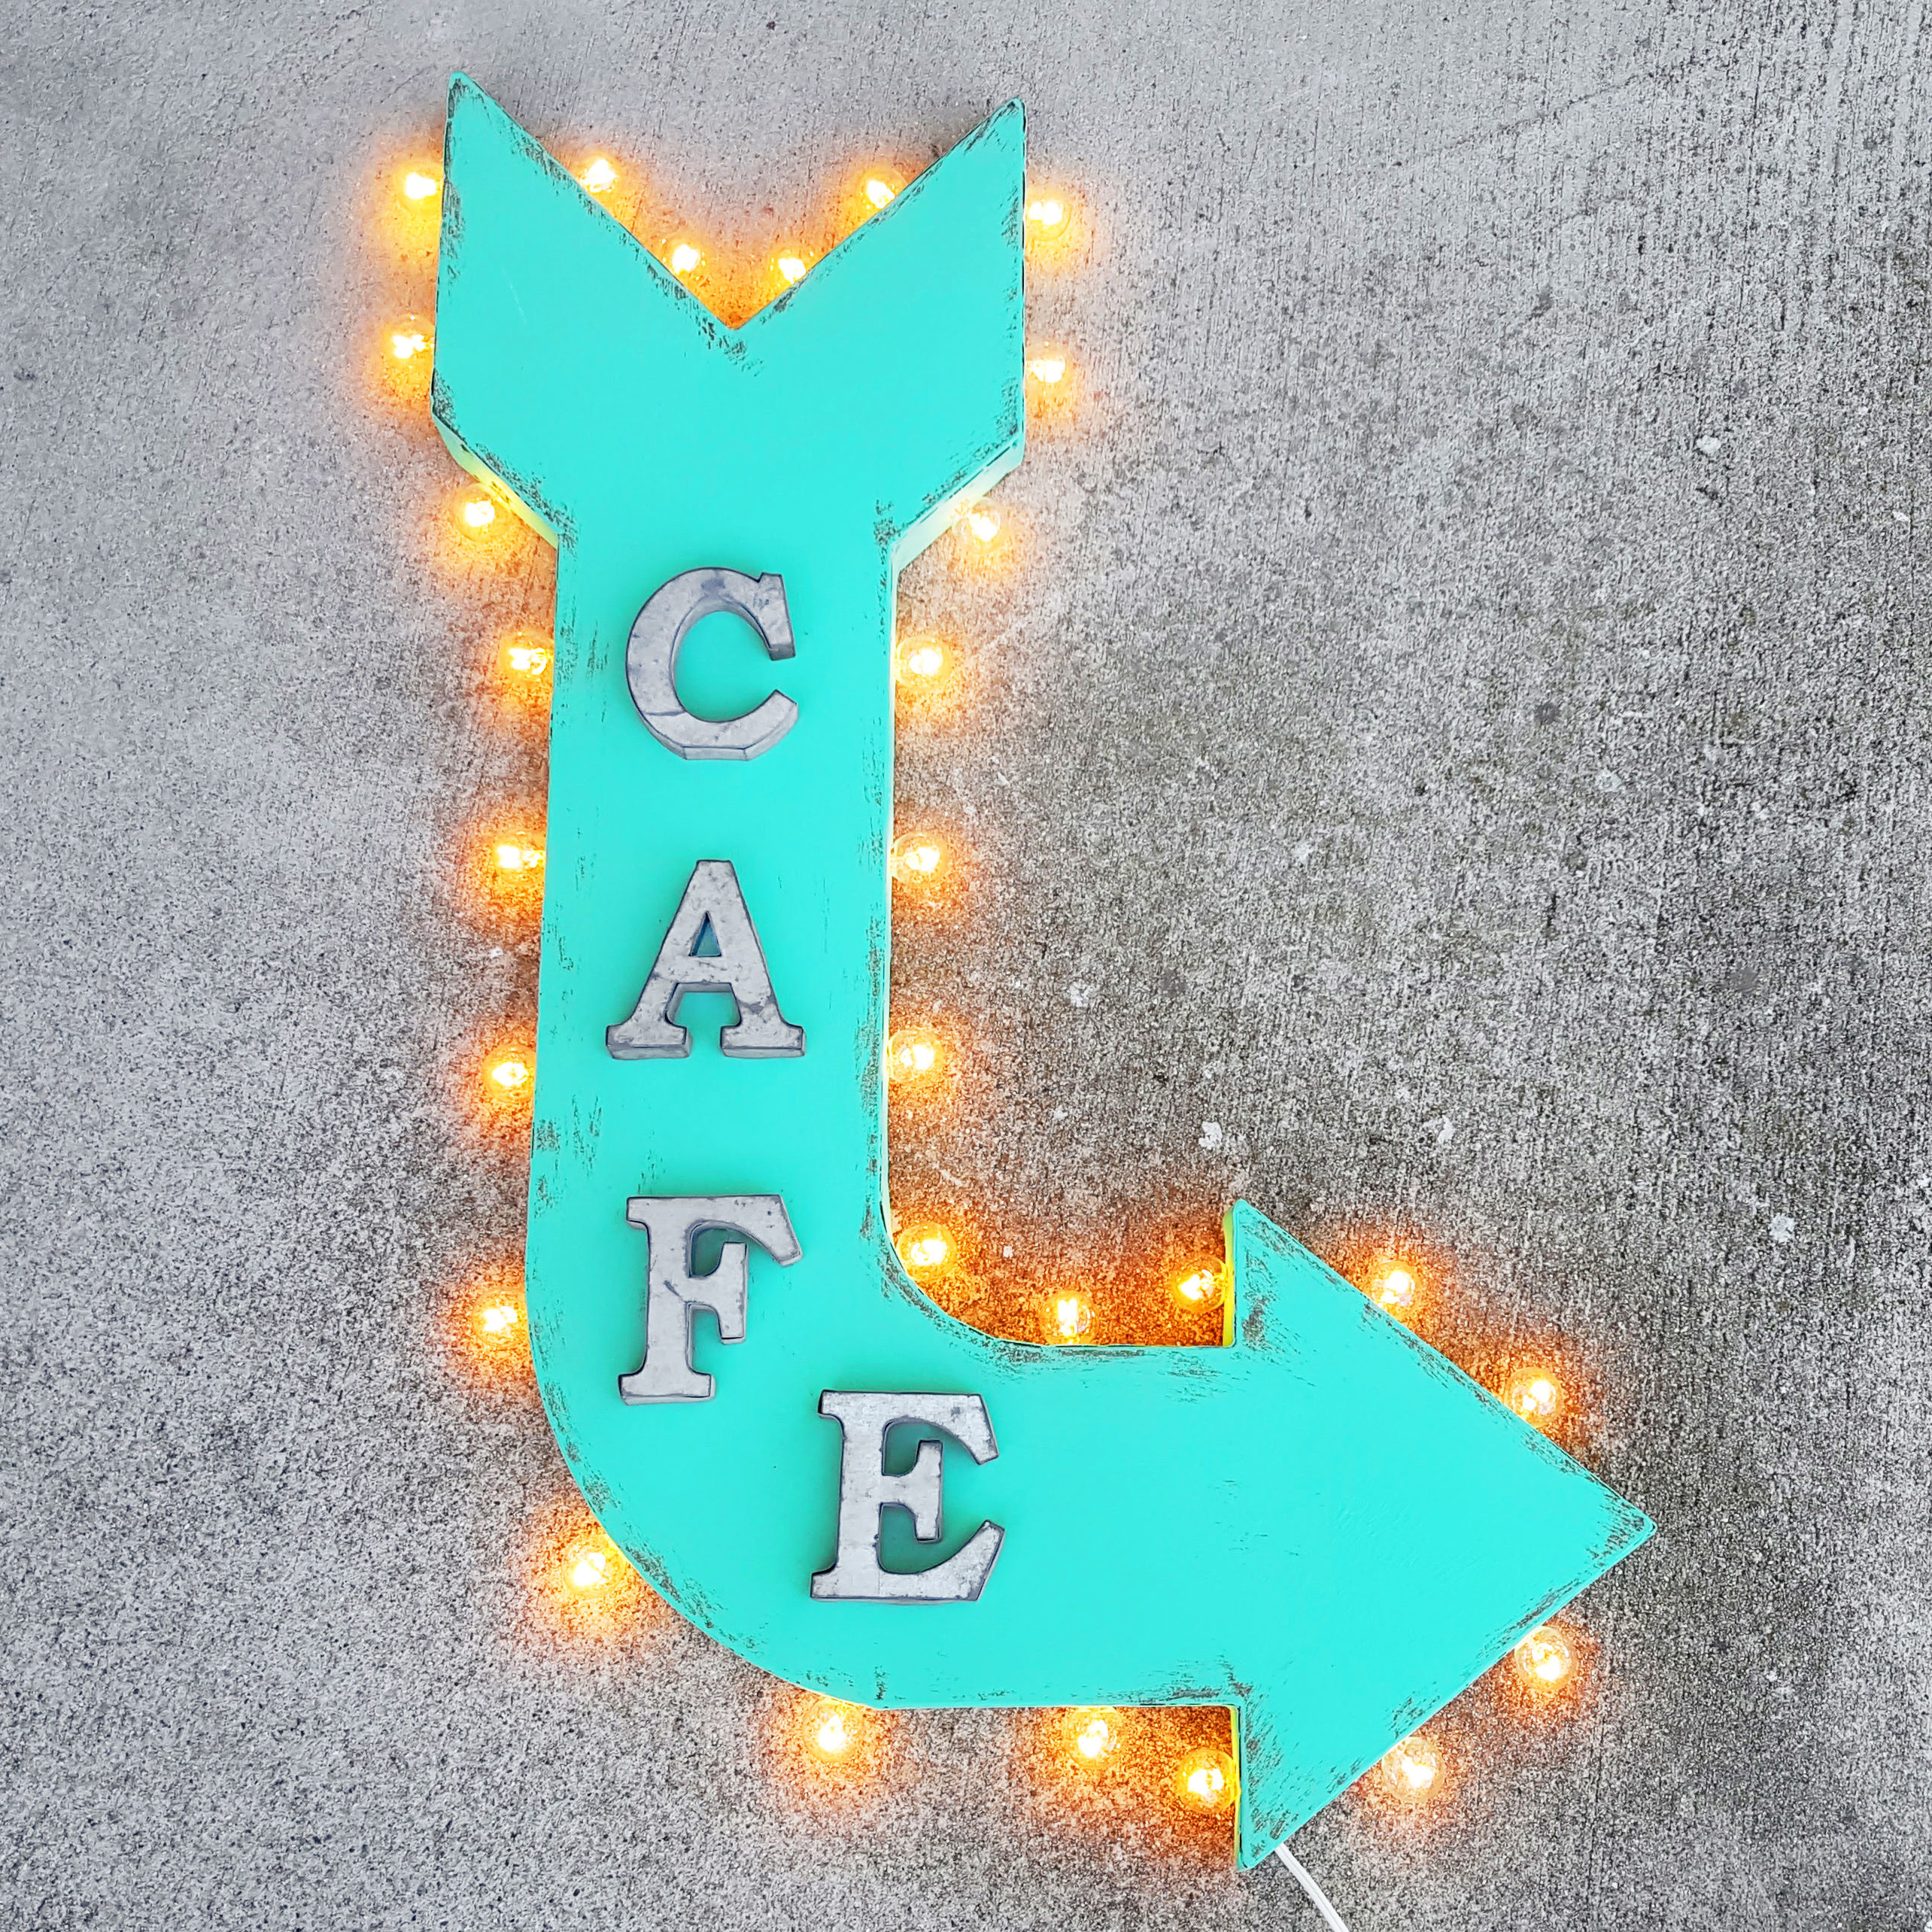 Cafe Rustic Metal Curved Arrow Marquee Eatery Bar Eat Restaurant Diner Sign - 14 Colors! - Rust, Right Horizontal, Plug-In 59f2736ae2246164f809ef79